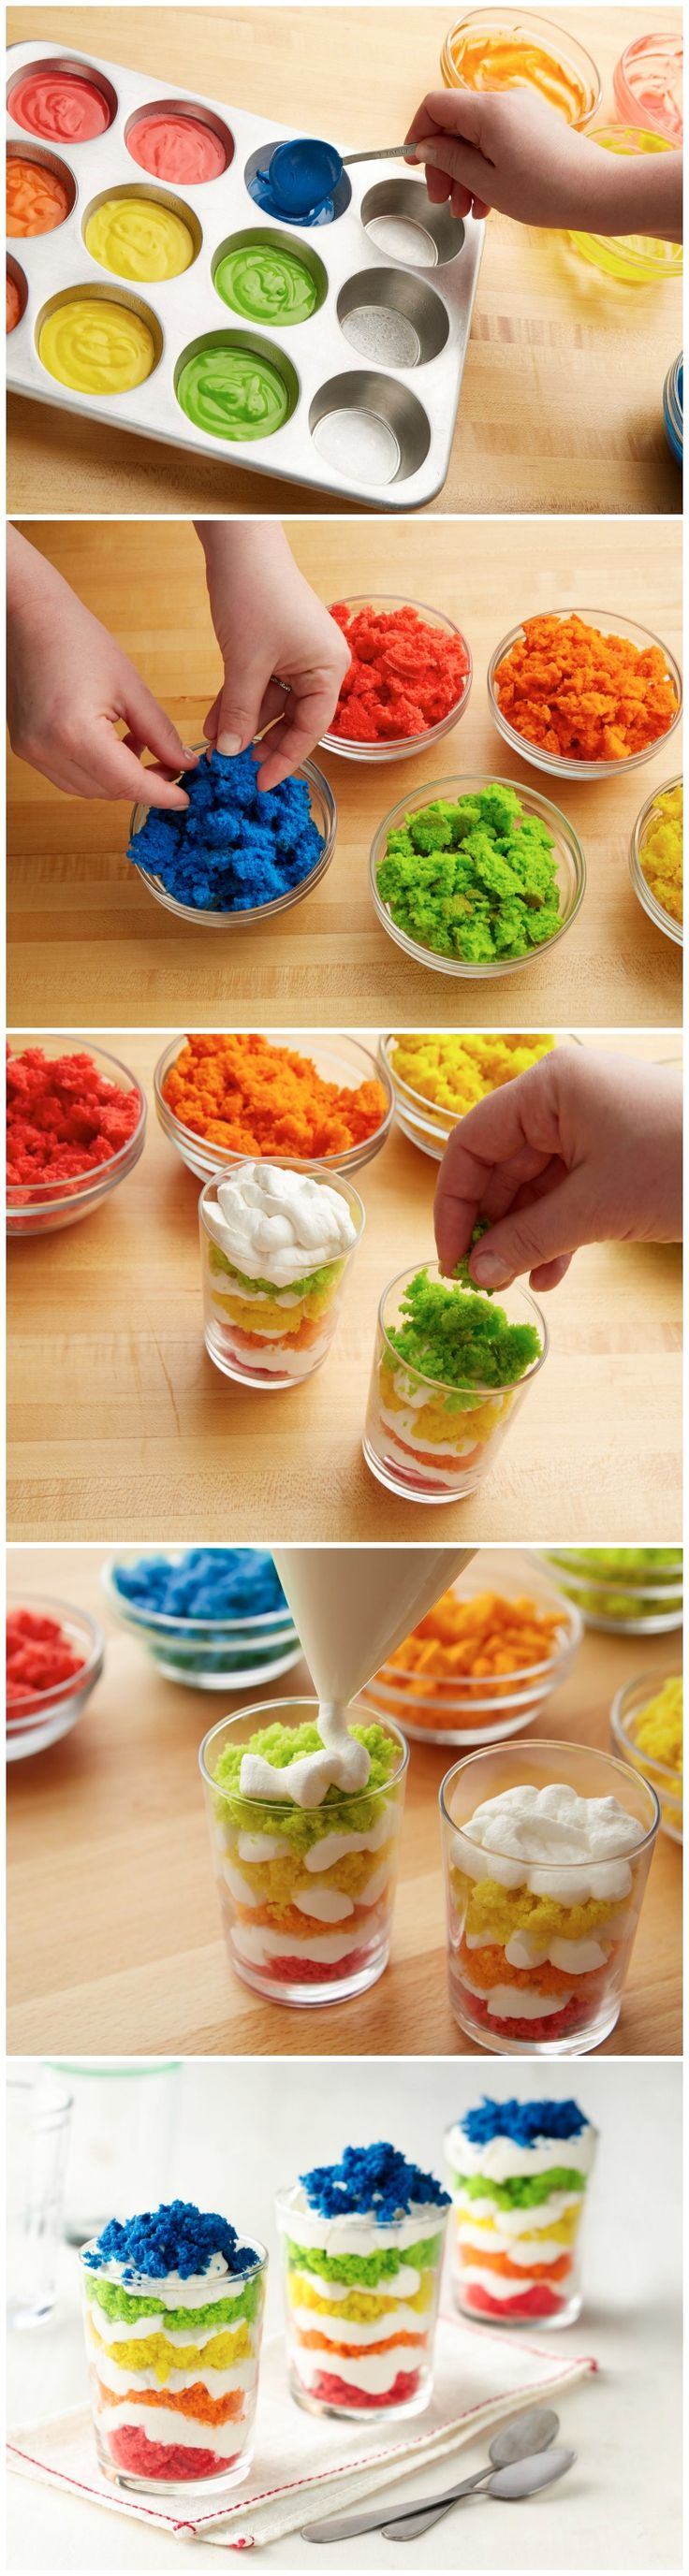 End-Of-The-Rainbow Cookie Parfaits ~ Says: Kids and adults will flip for these easy rainbow parfaits that are easy to make and over-the-top delicious... cute for St. Patrick's Day or a Rainbow Themed Party